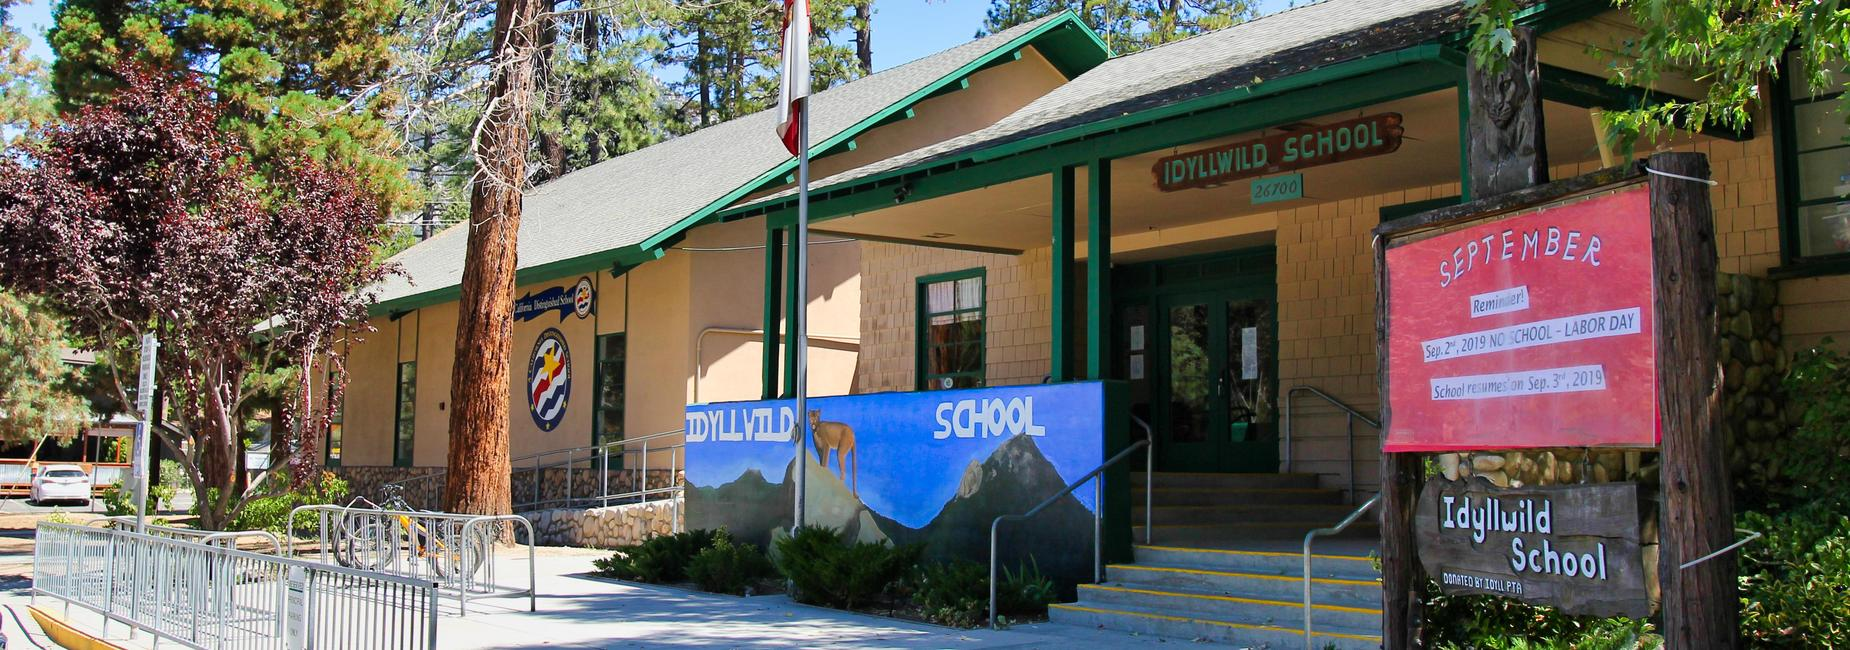 Idyllwild administration building